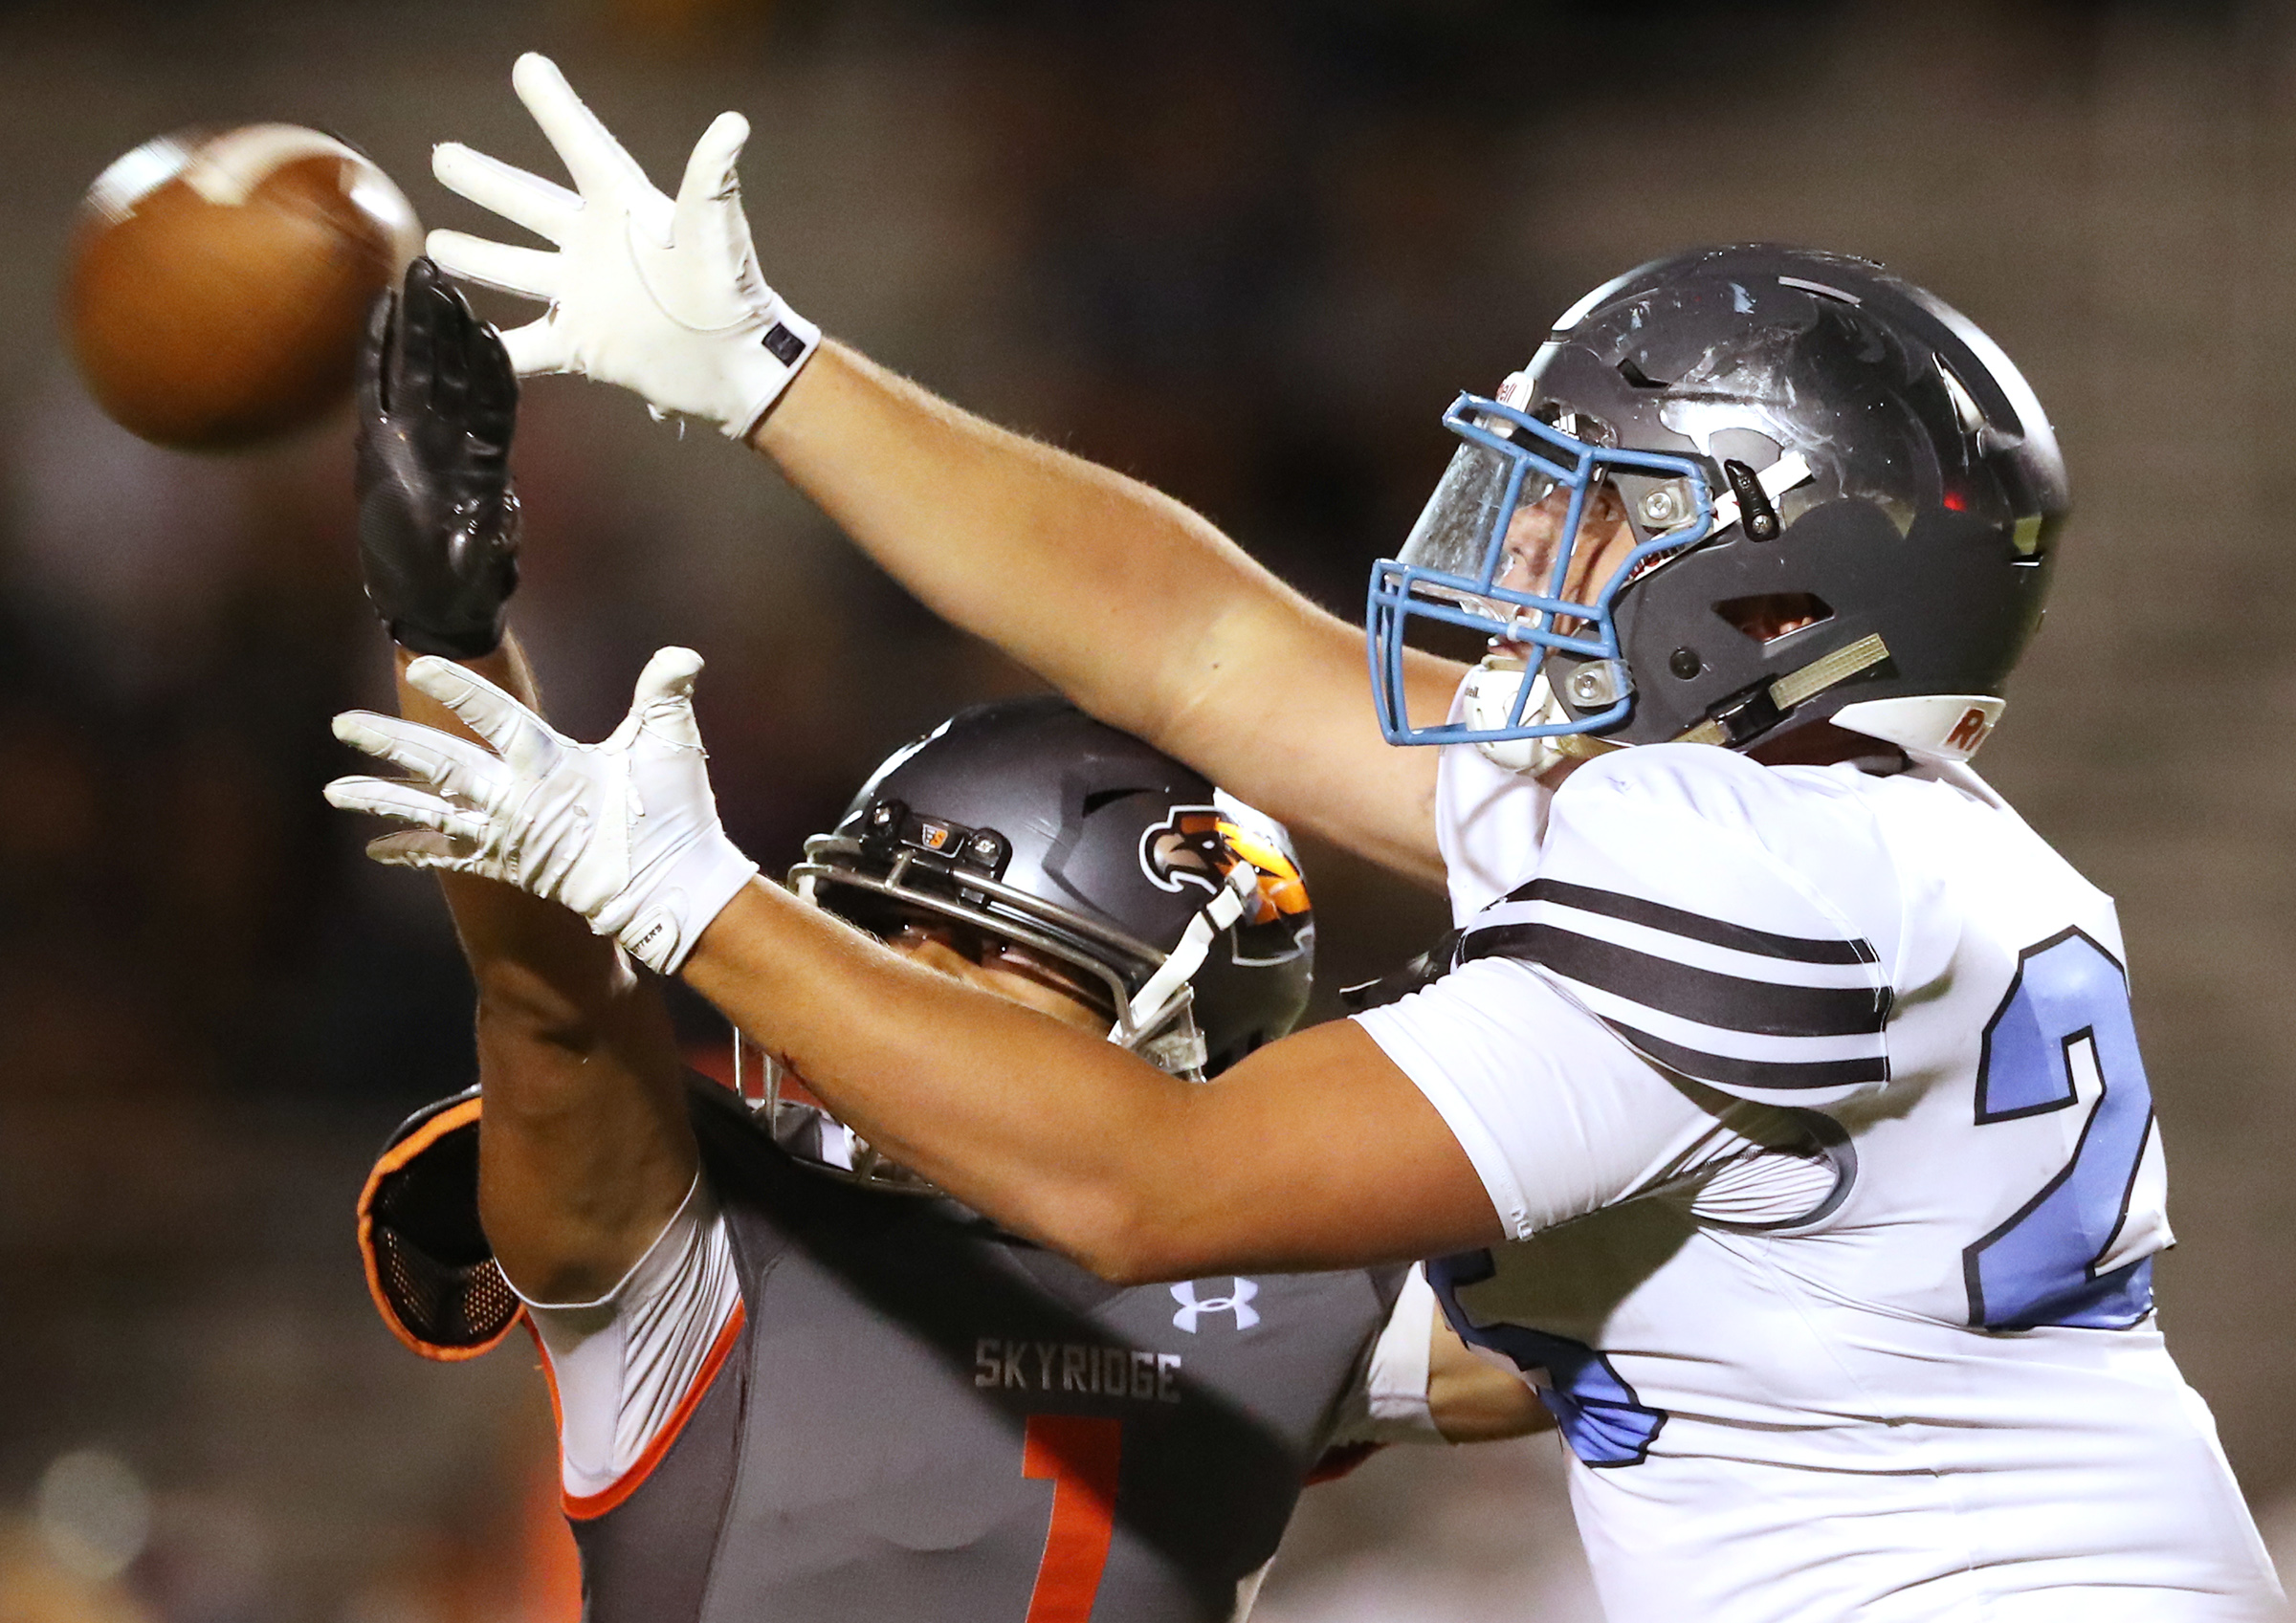 Skyridge's Malae Tanuvasa knocks the ball away from Sky View's Jacob Zollinger as they play a high school football game in Lehi on Friday, Aug. 23, 2019. Skyridge won 18-10.